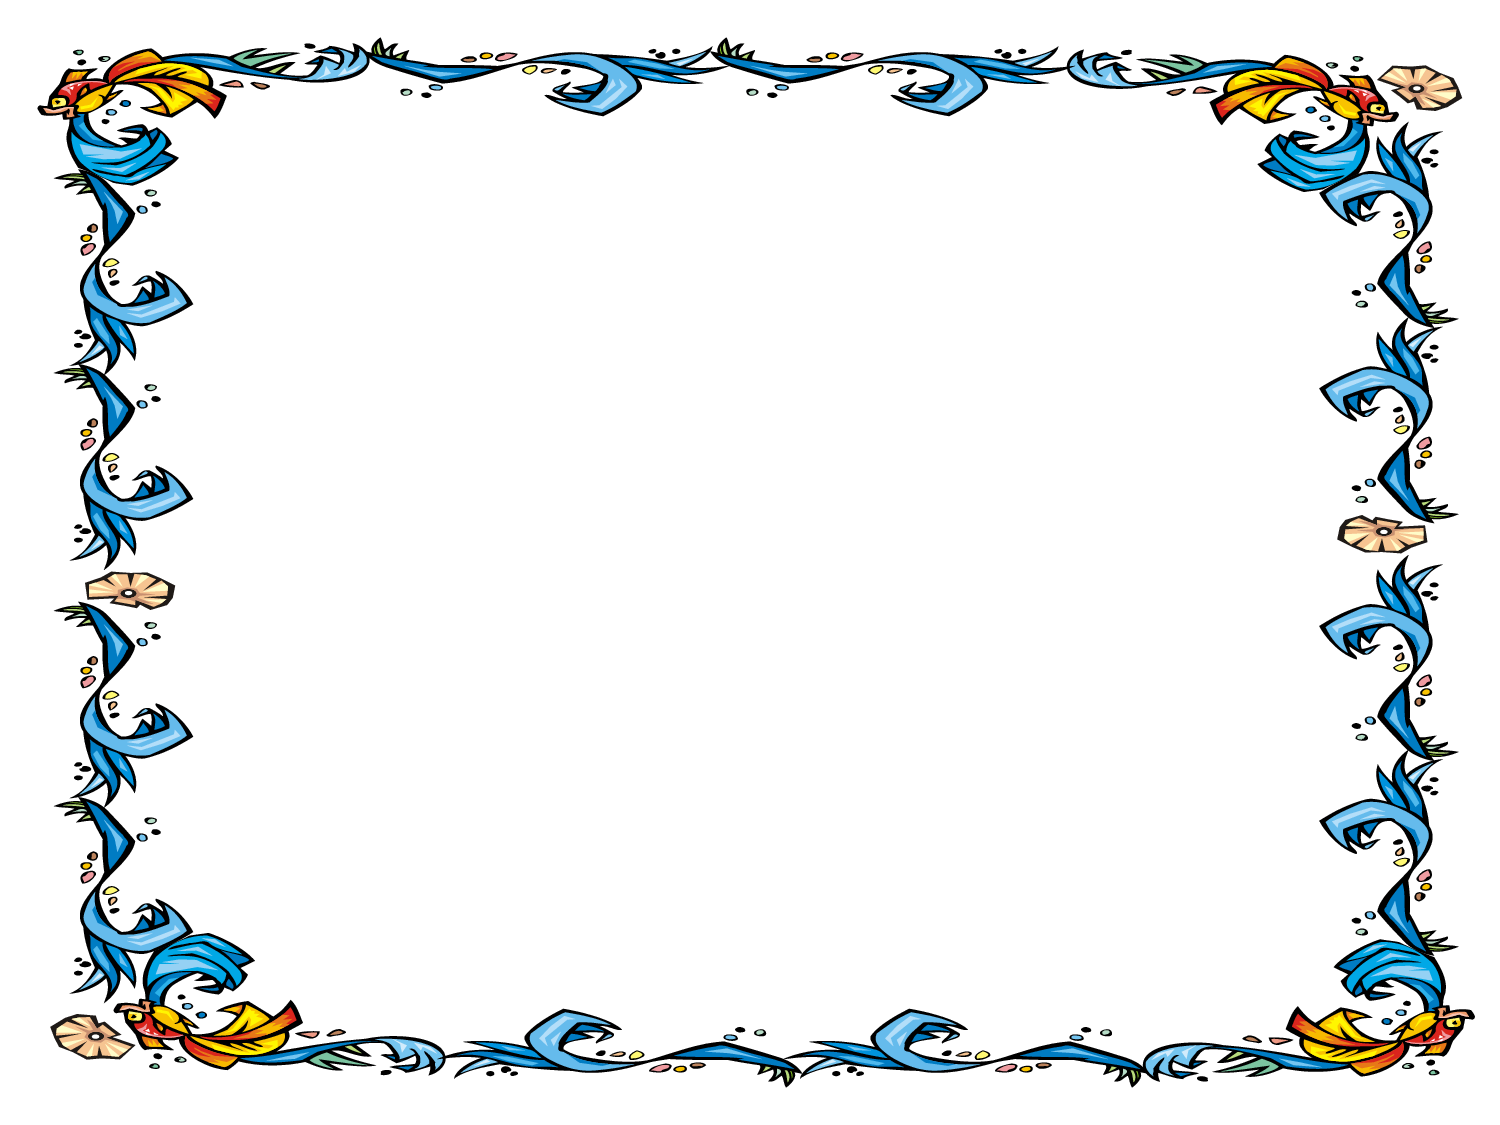 Award clipart borders. Free powerpoint template floral